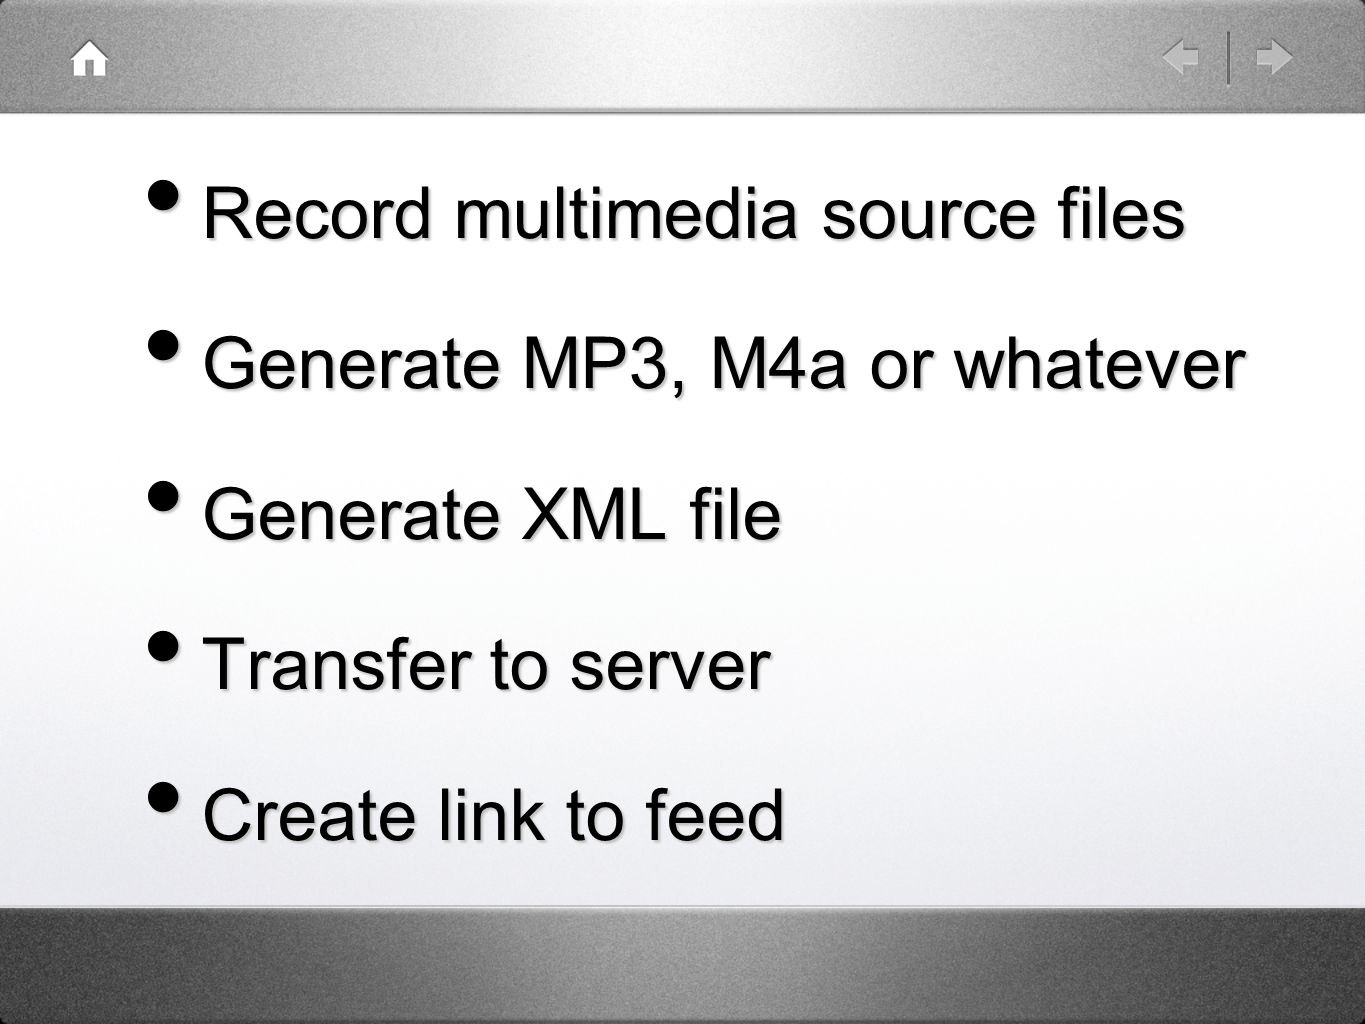 Record multimedia source files Record multimedia source files Generate MP3, M4a or whatever Generate MP3, M4a or whatever Generate XML file Generate XML file Transfer to server Transfer to server Create link to feed Create link to feed